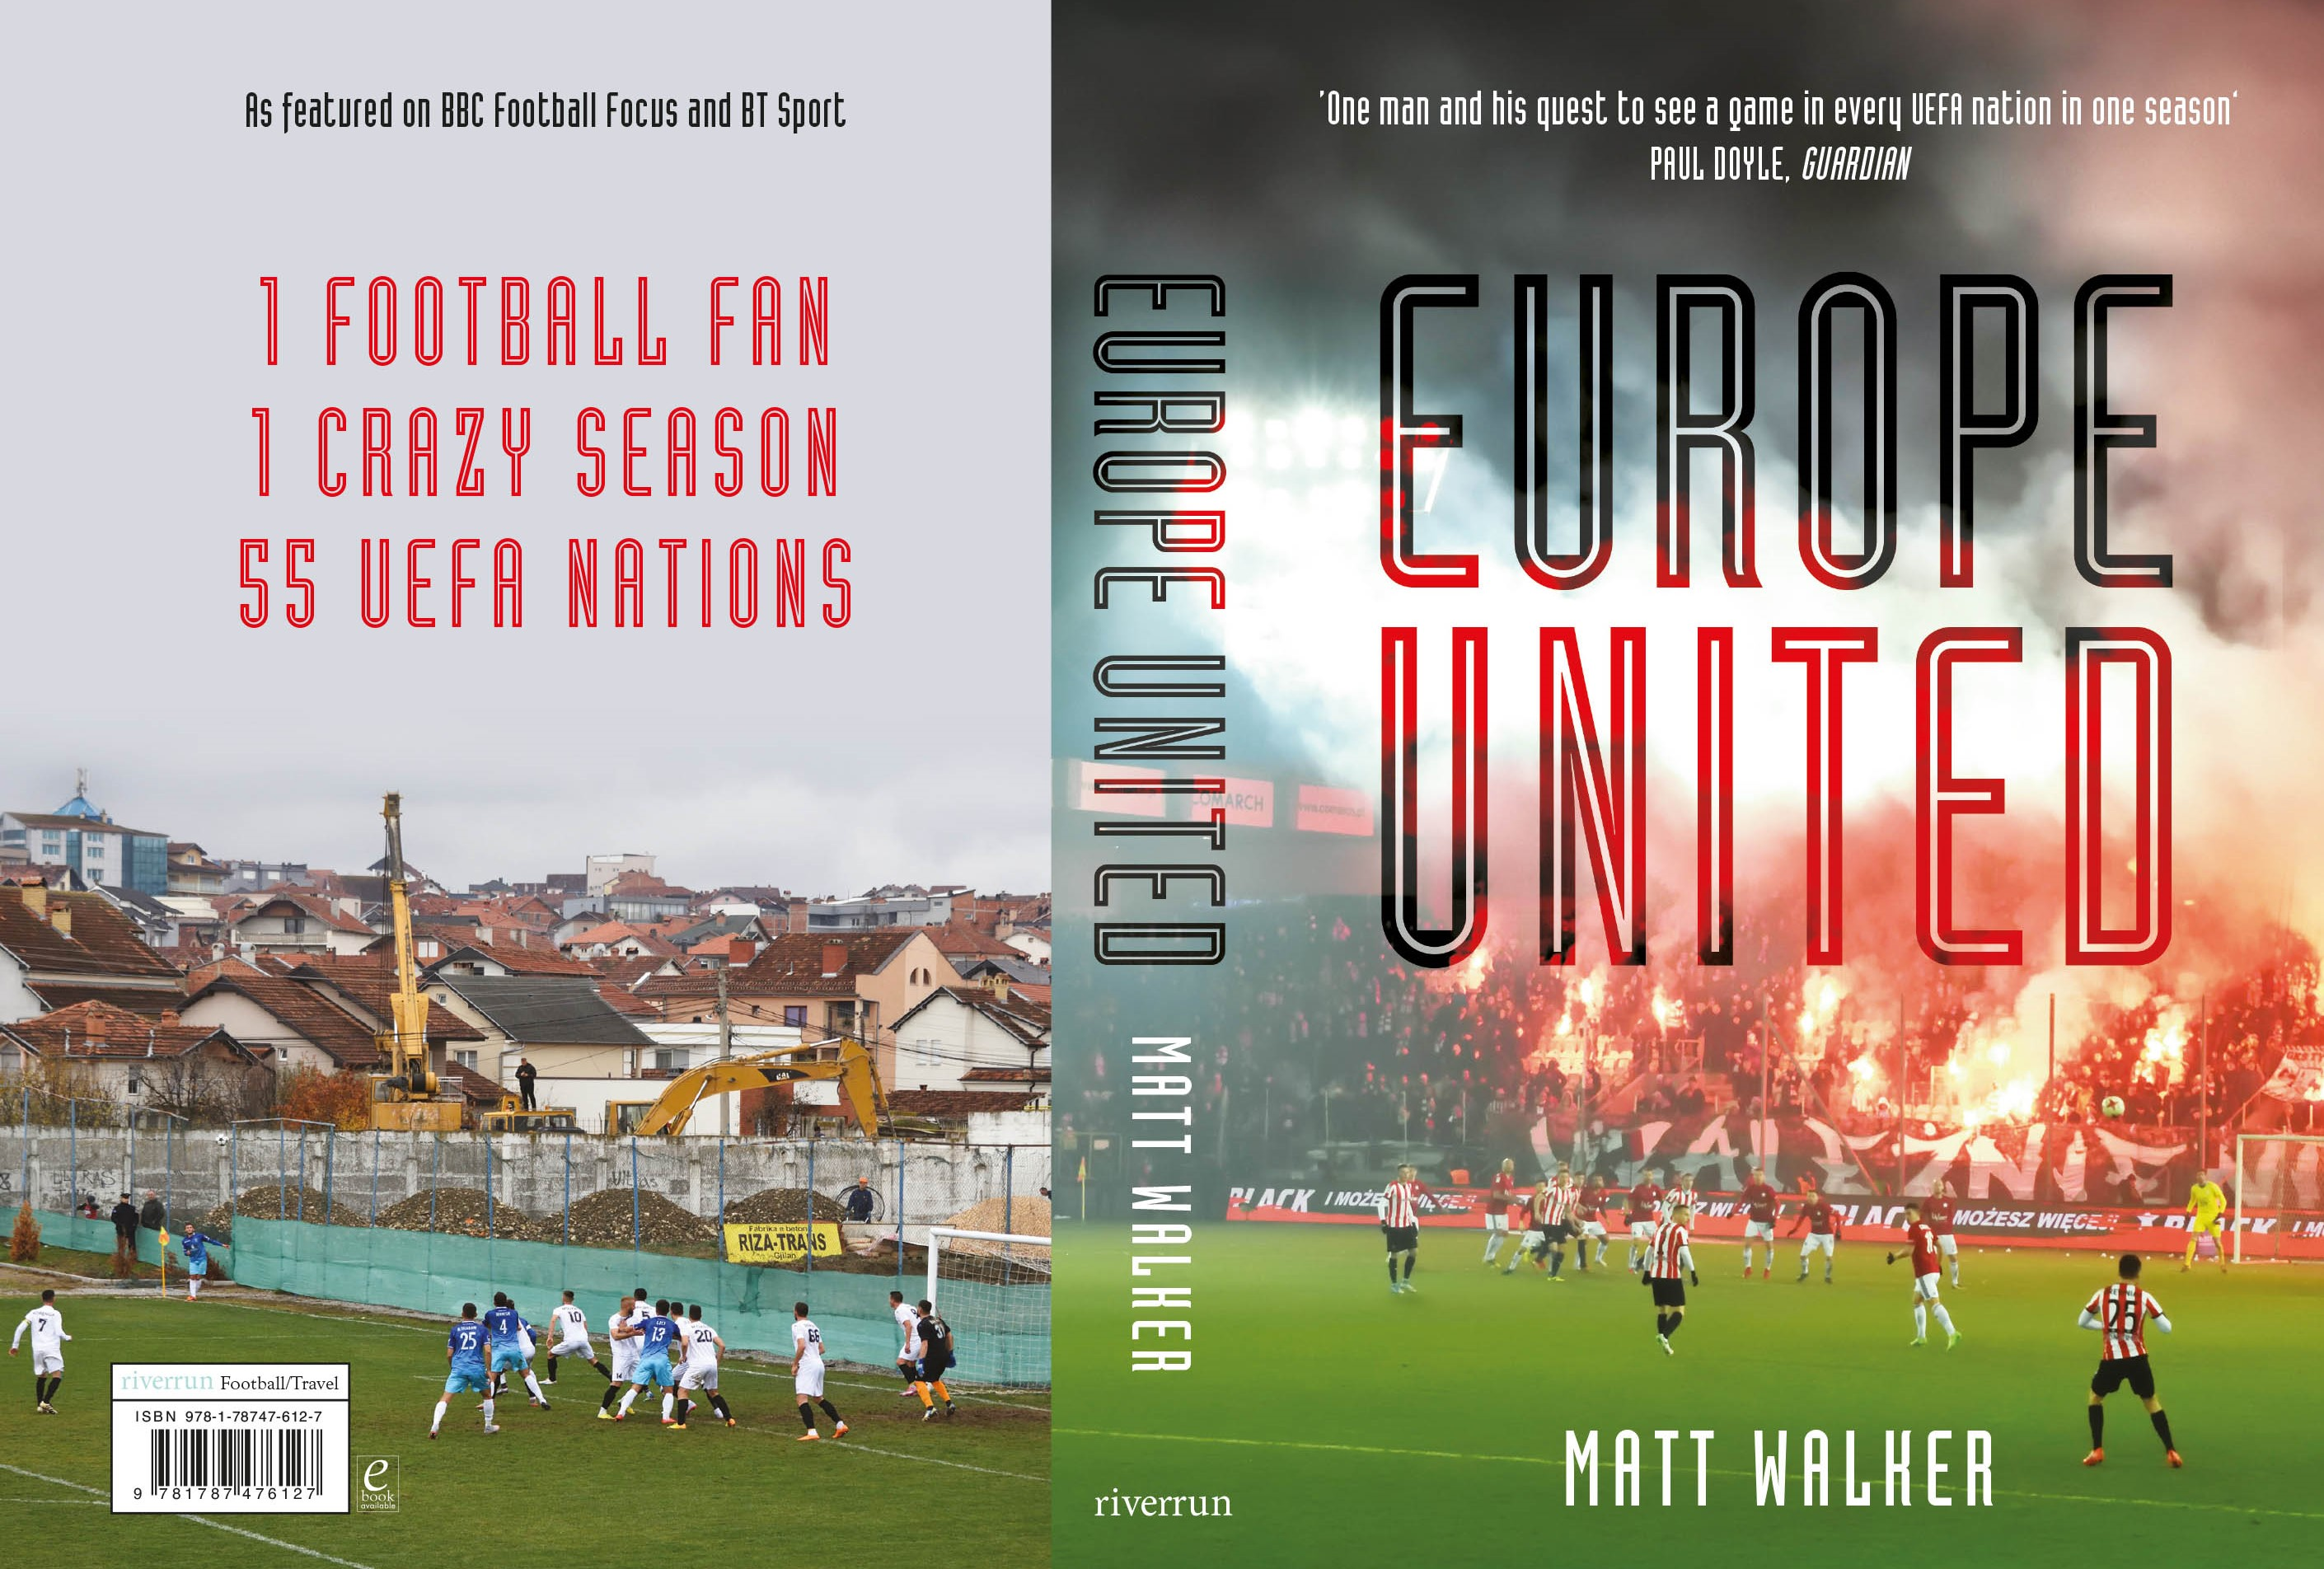 'Europe United' published on 8 August 2019